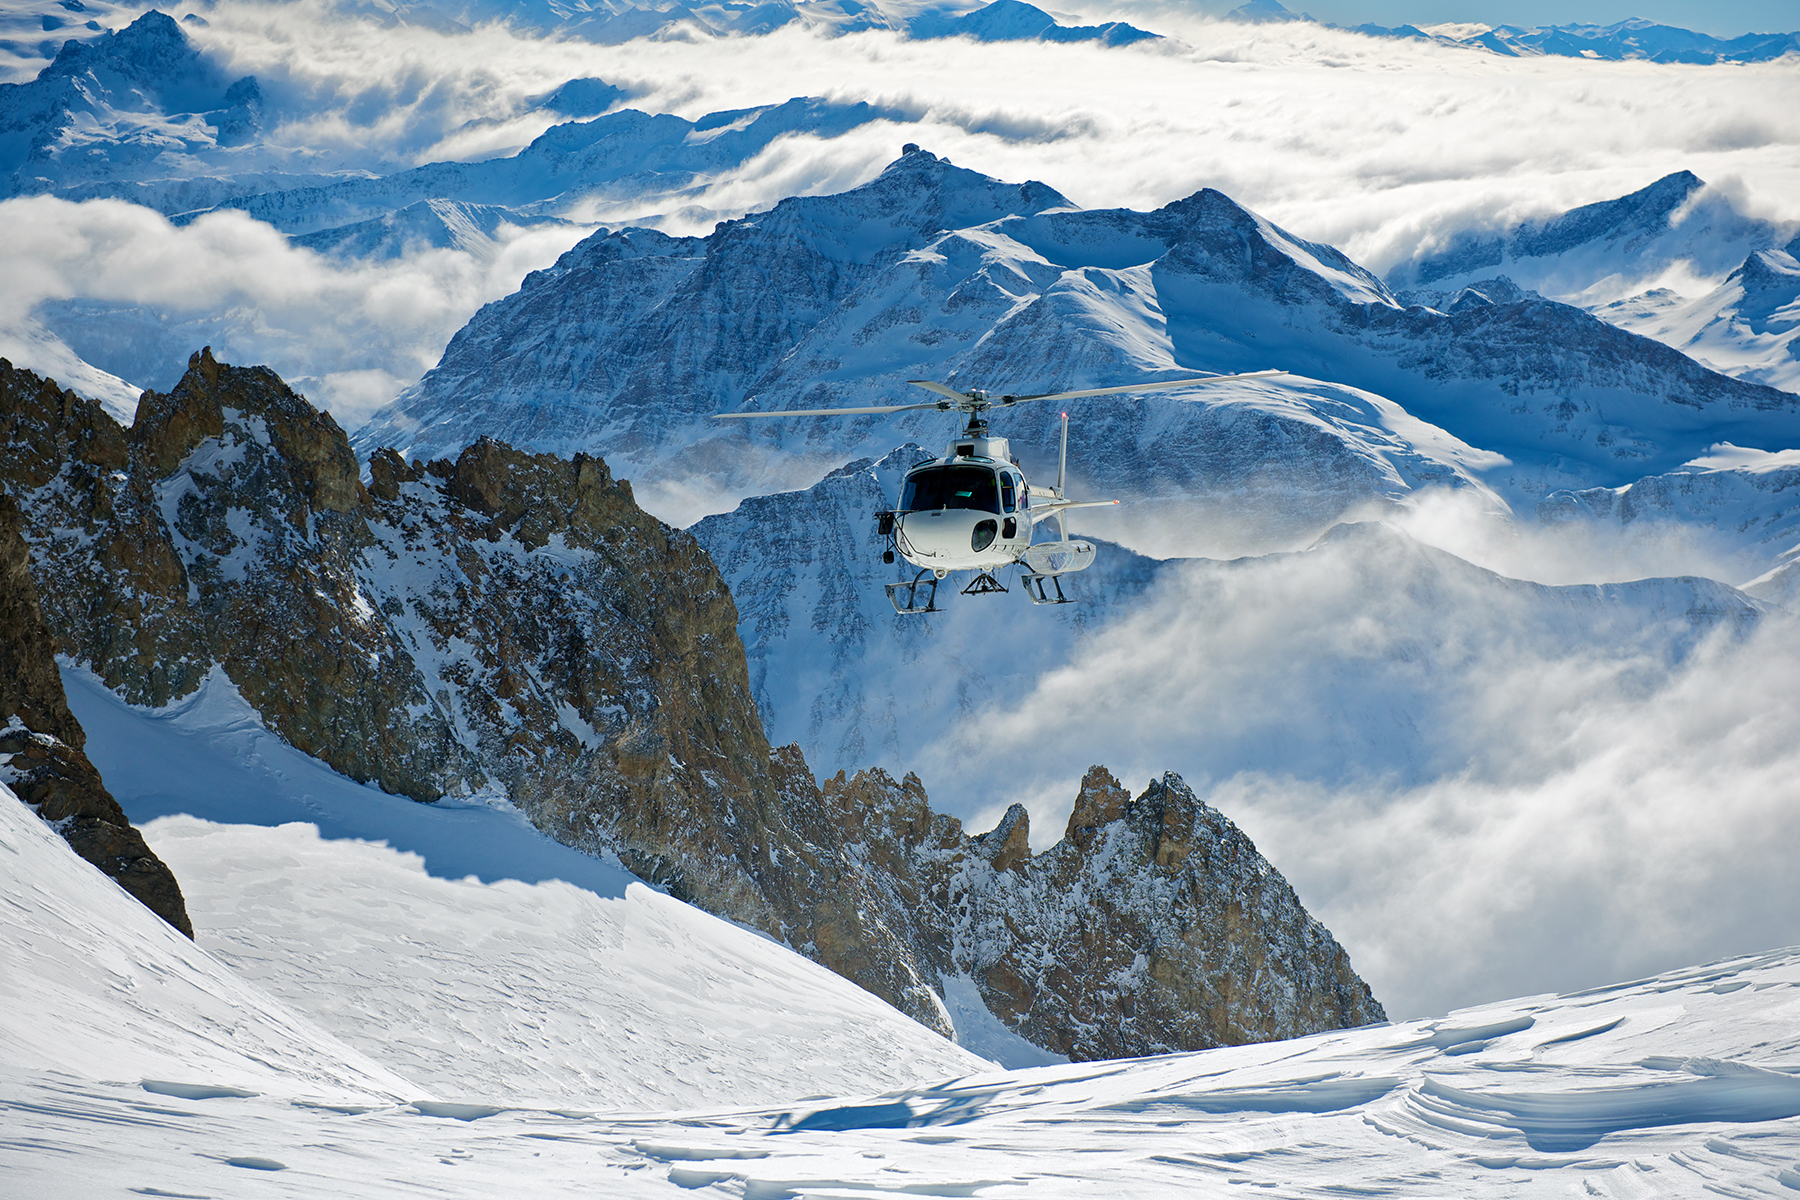 Helicopter Skiing in the Alps